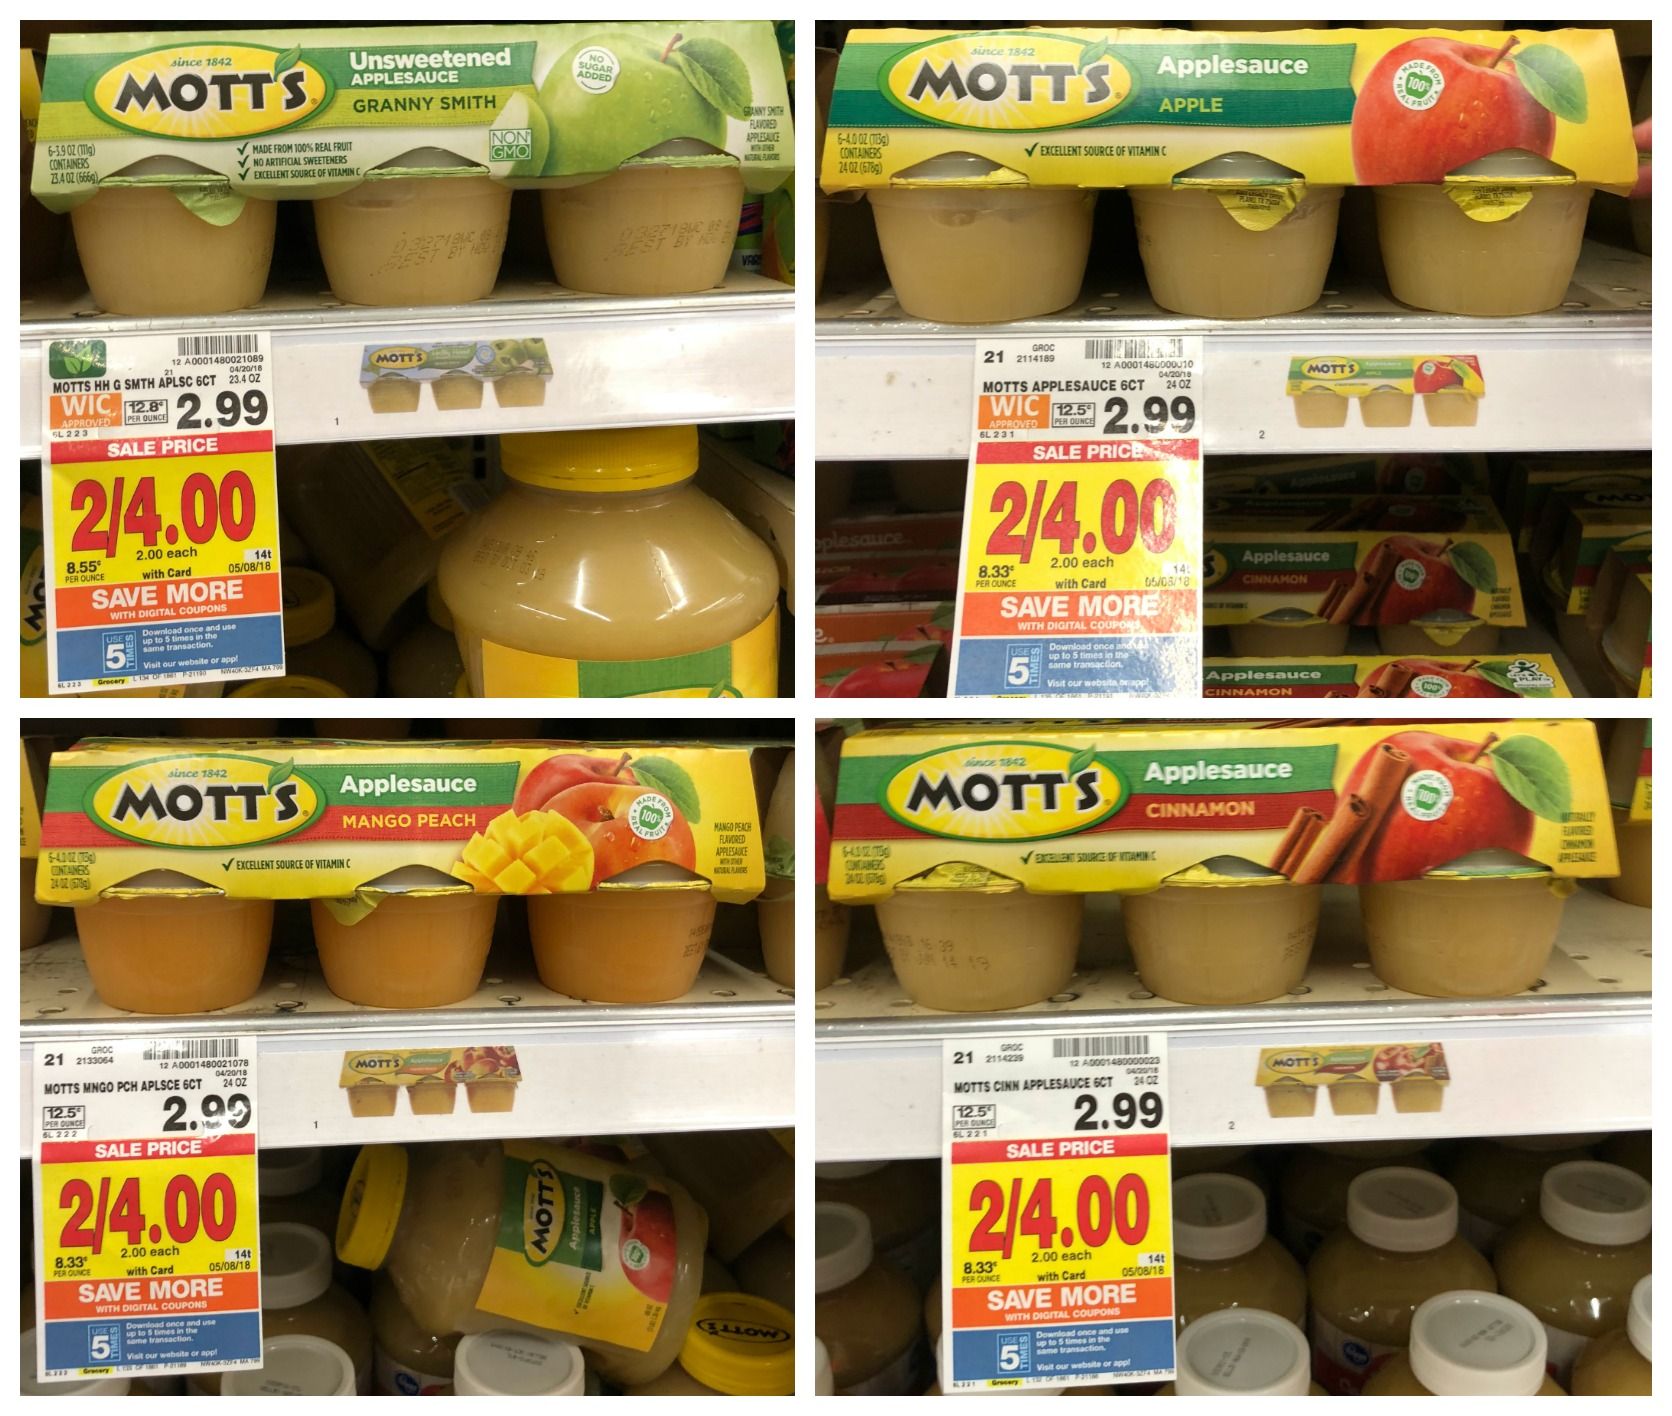 Motts applesauce coupons december 2018